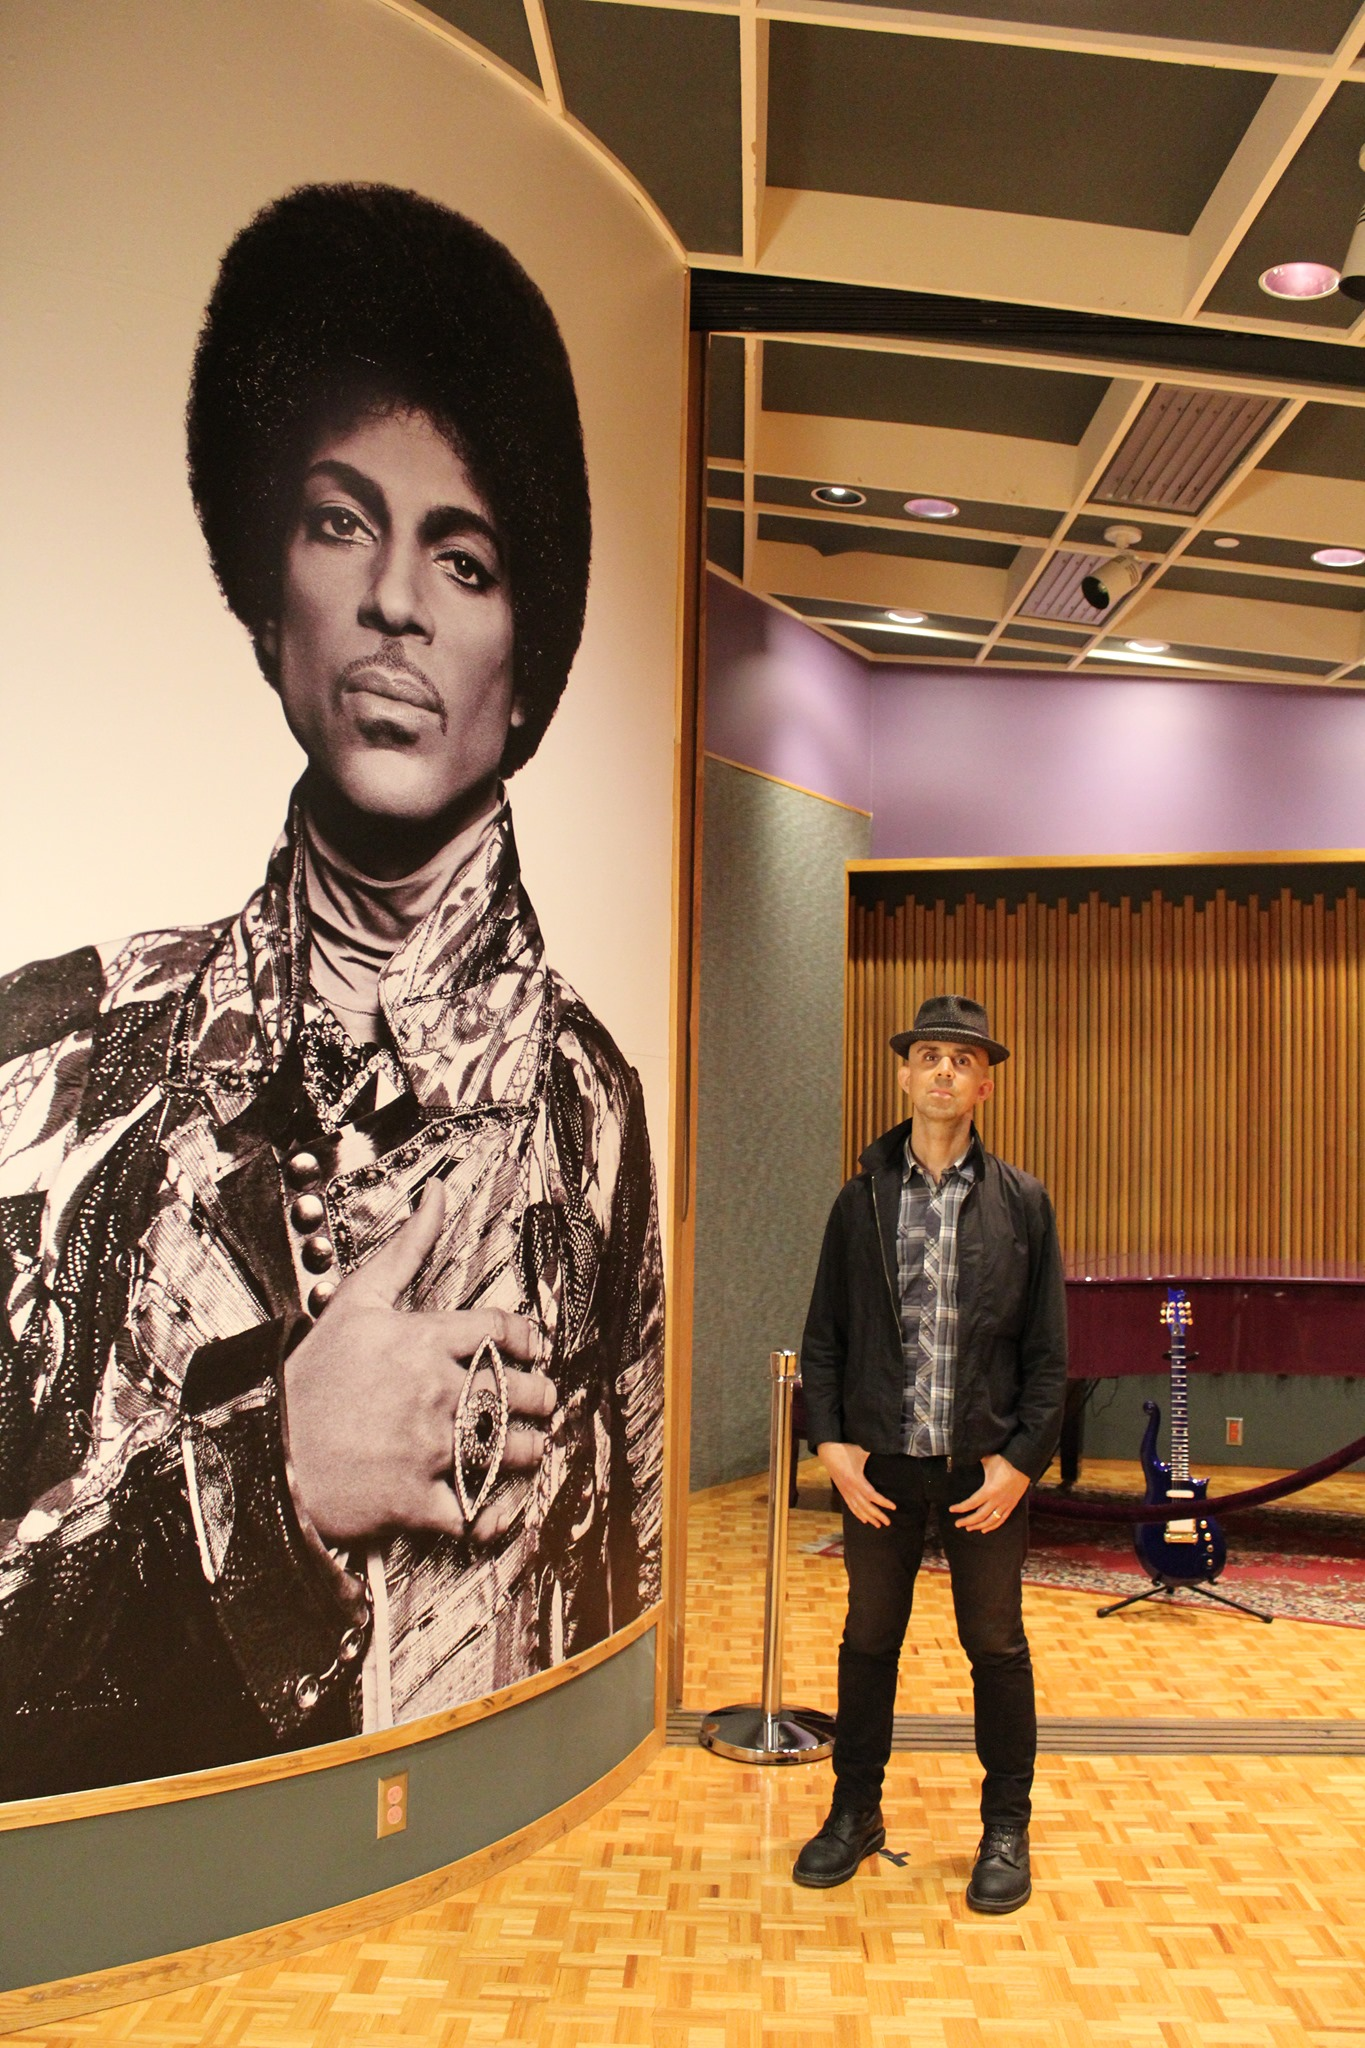 Inside the Palace of Prince aka Paisley Park in Chanhassen, MN.